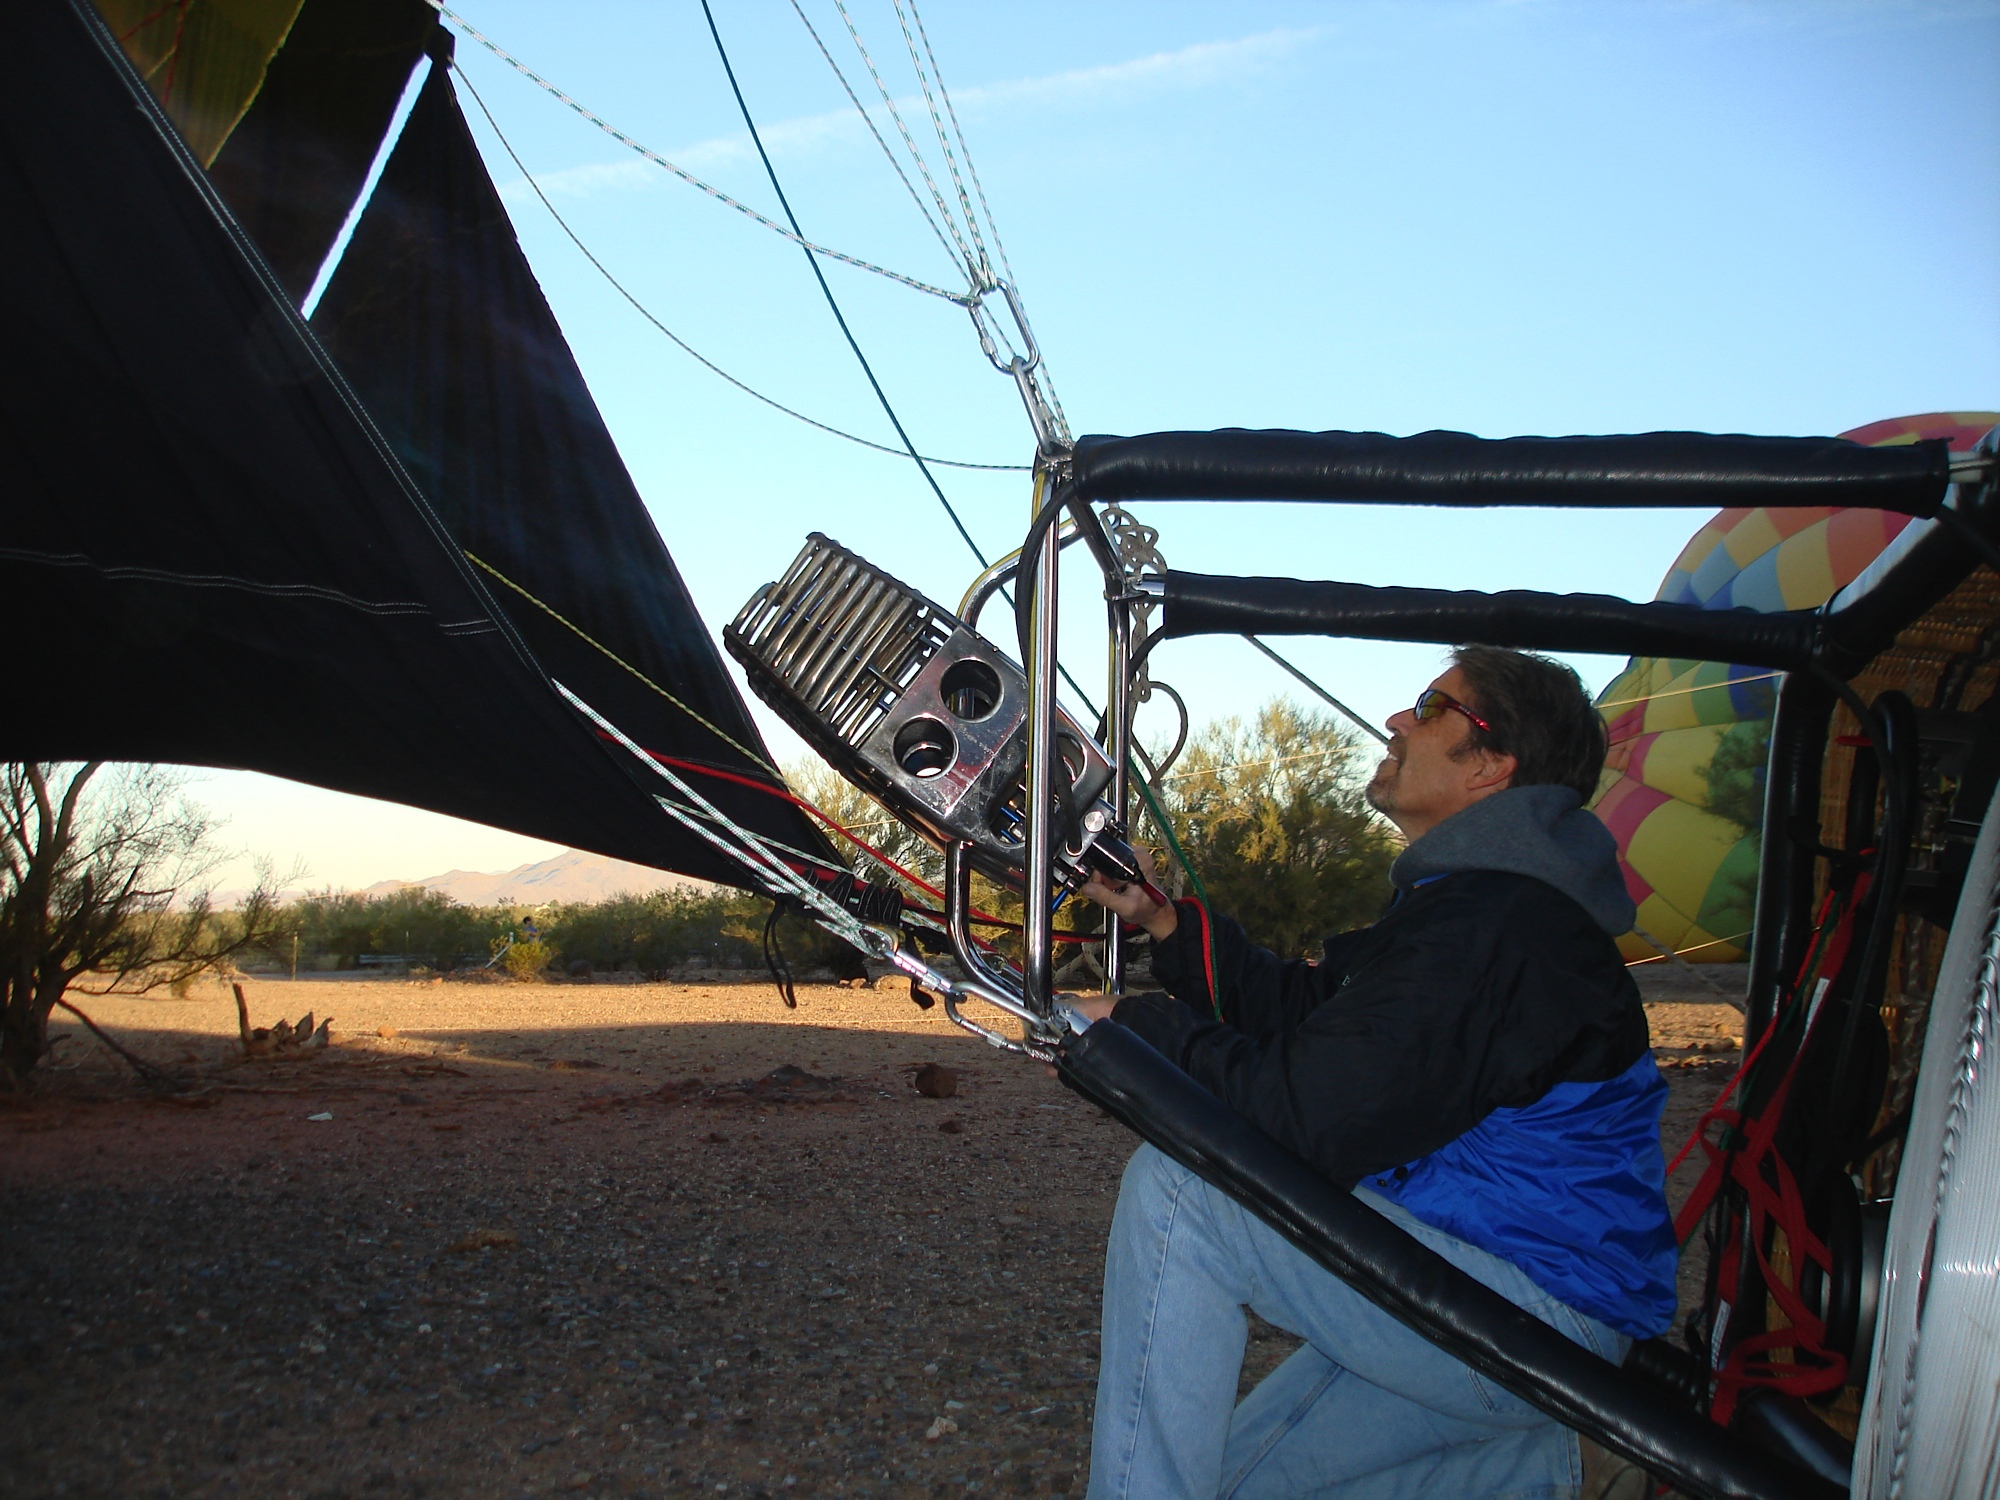 Kevin Flanagan is inflating a hot air balloon before a ride in Phoenix, Arizona.